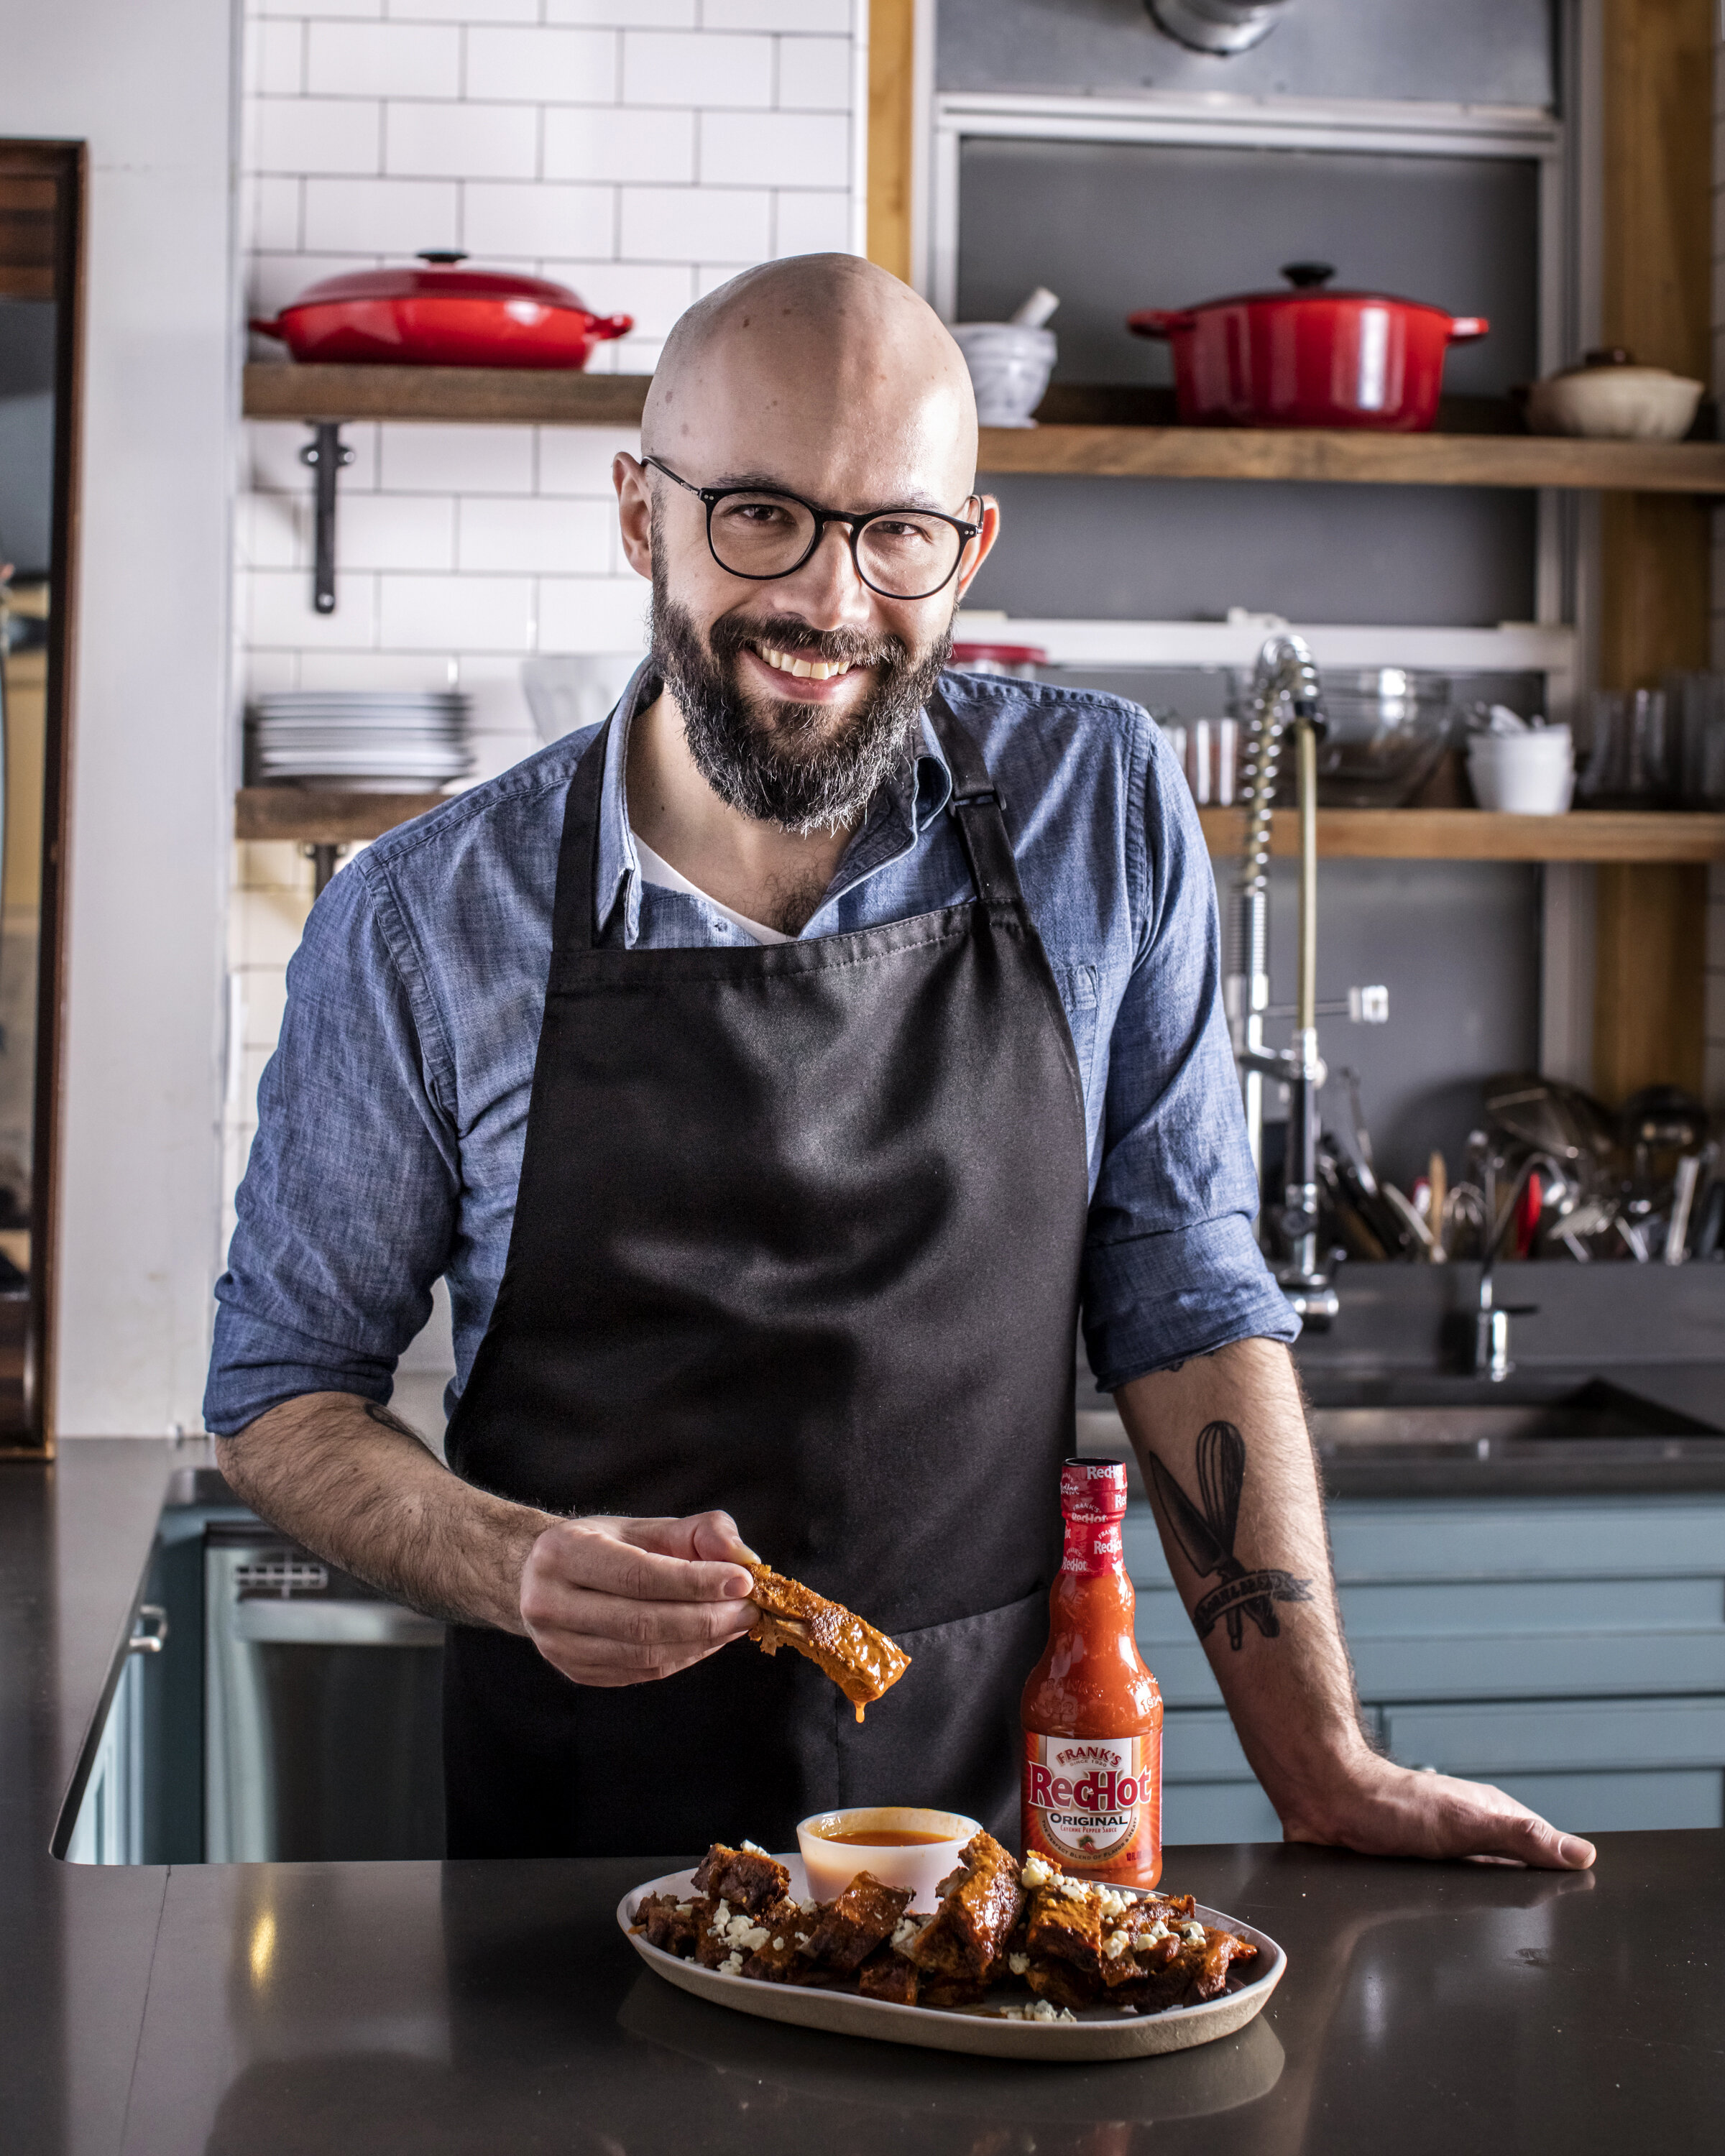 Franks RedHot Ribs .Andrew Rea, Binging with Babish, Food stylist, Judy Kim Photographer, Eric Medsker